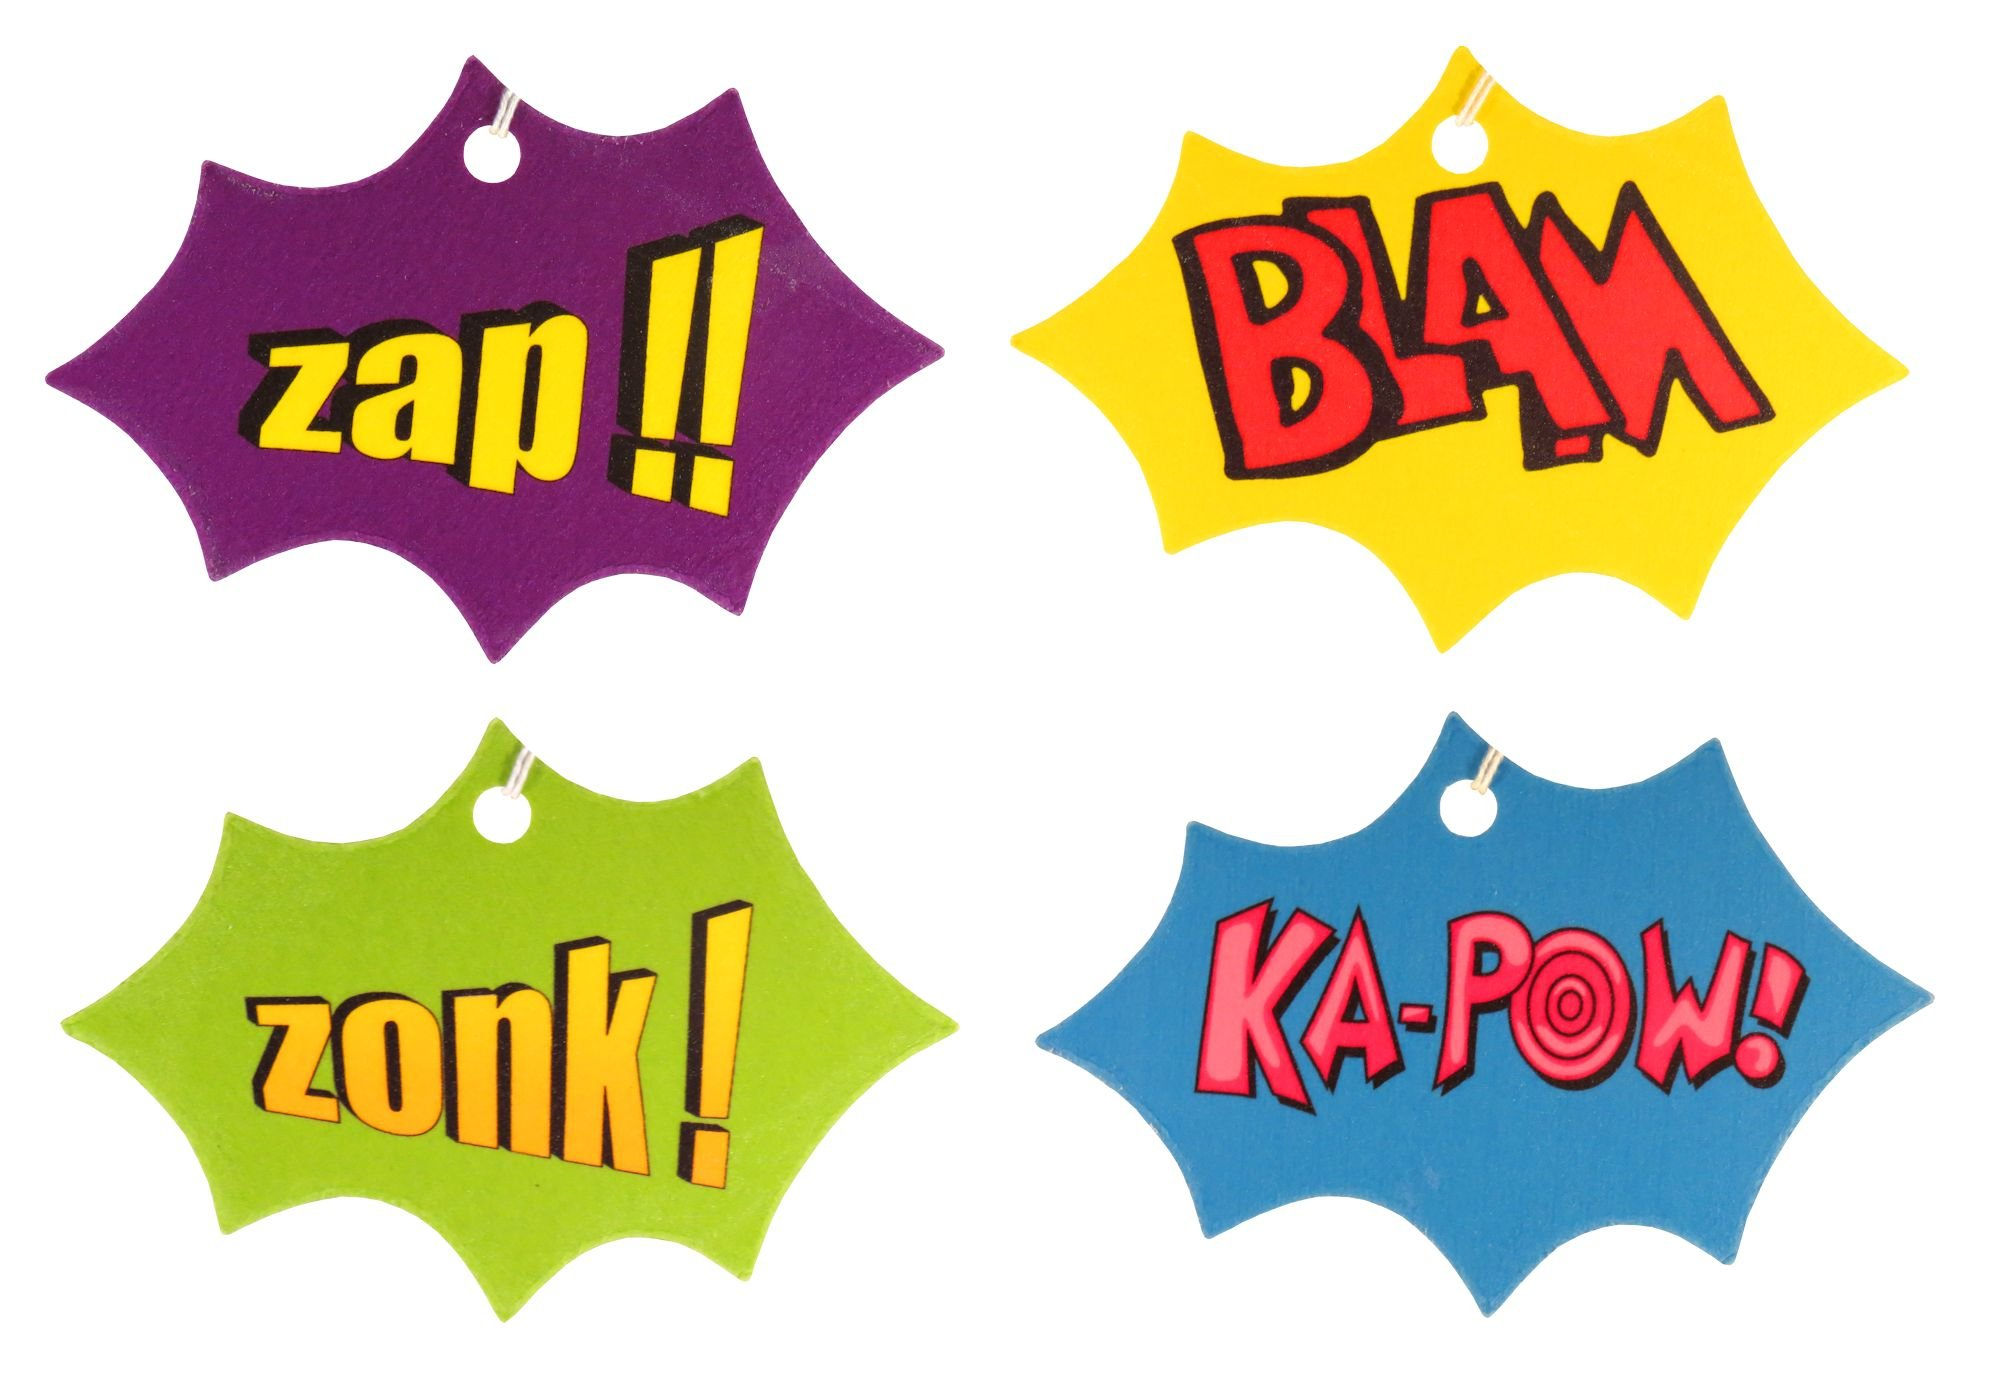 Set of Four Comic Book Explosion Air Fresheners, Cedarwood Essential Oil, Assorted